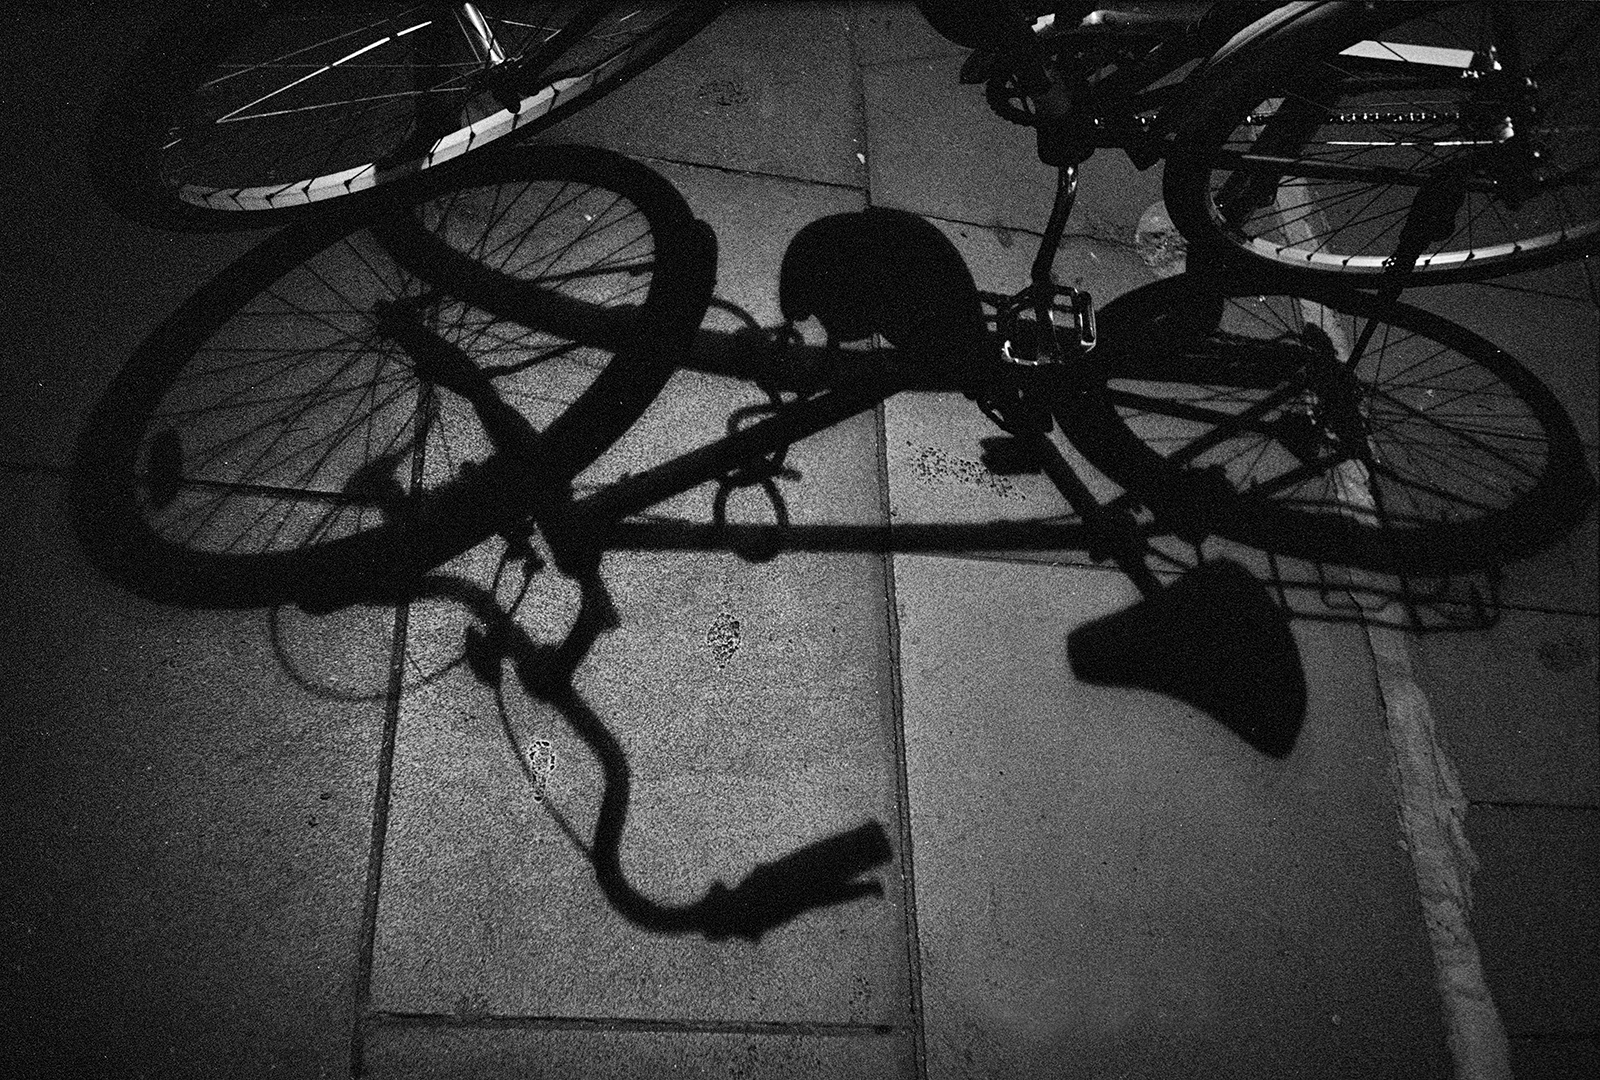 Black and white photo of bicycle and shadow.